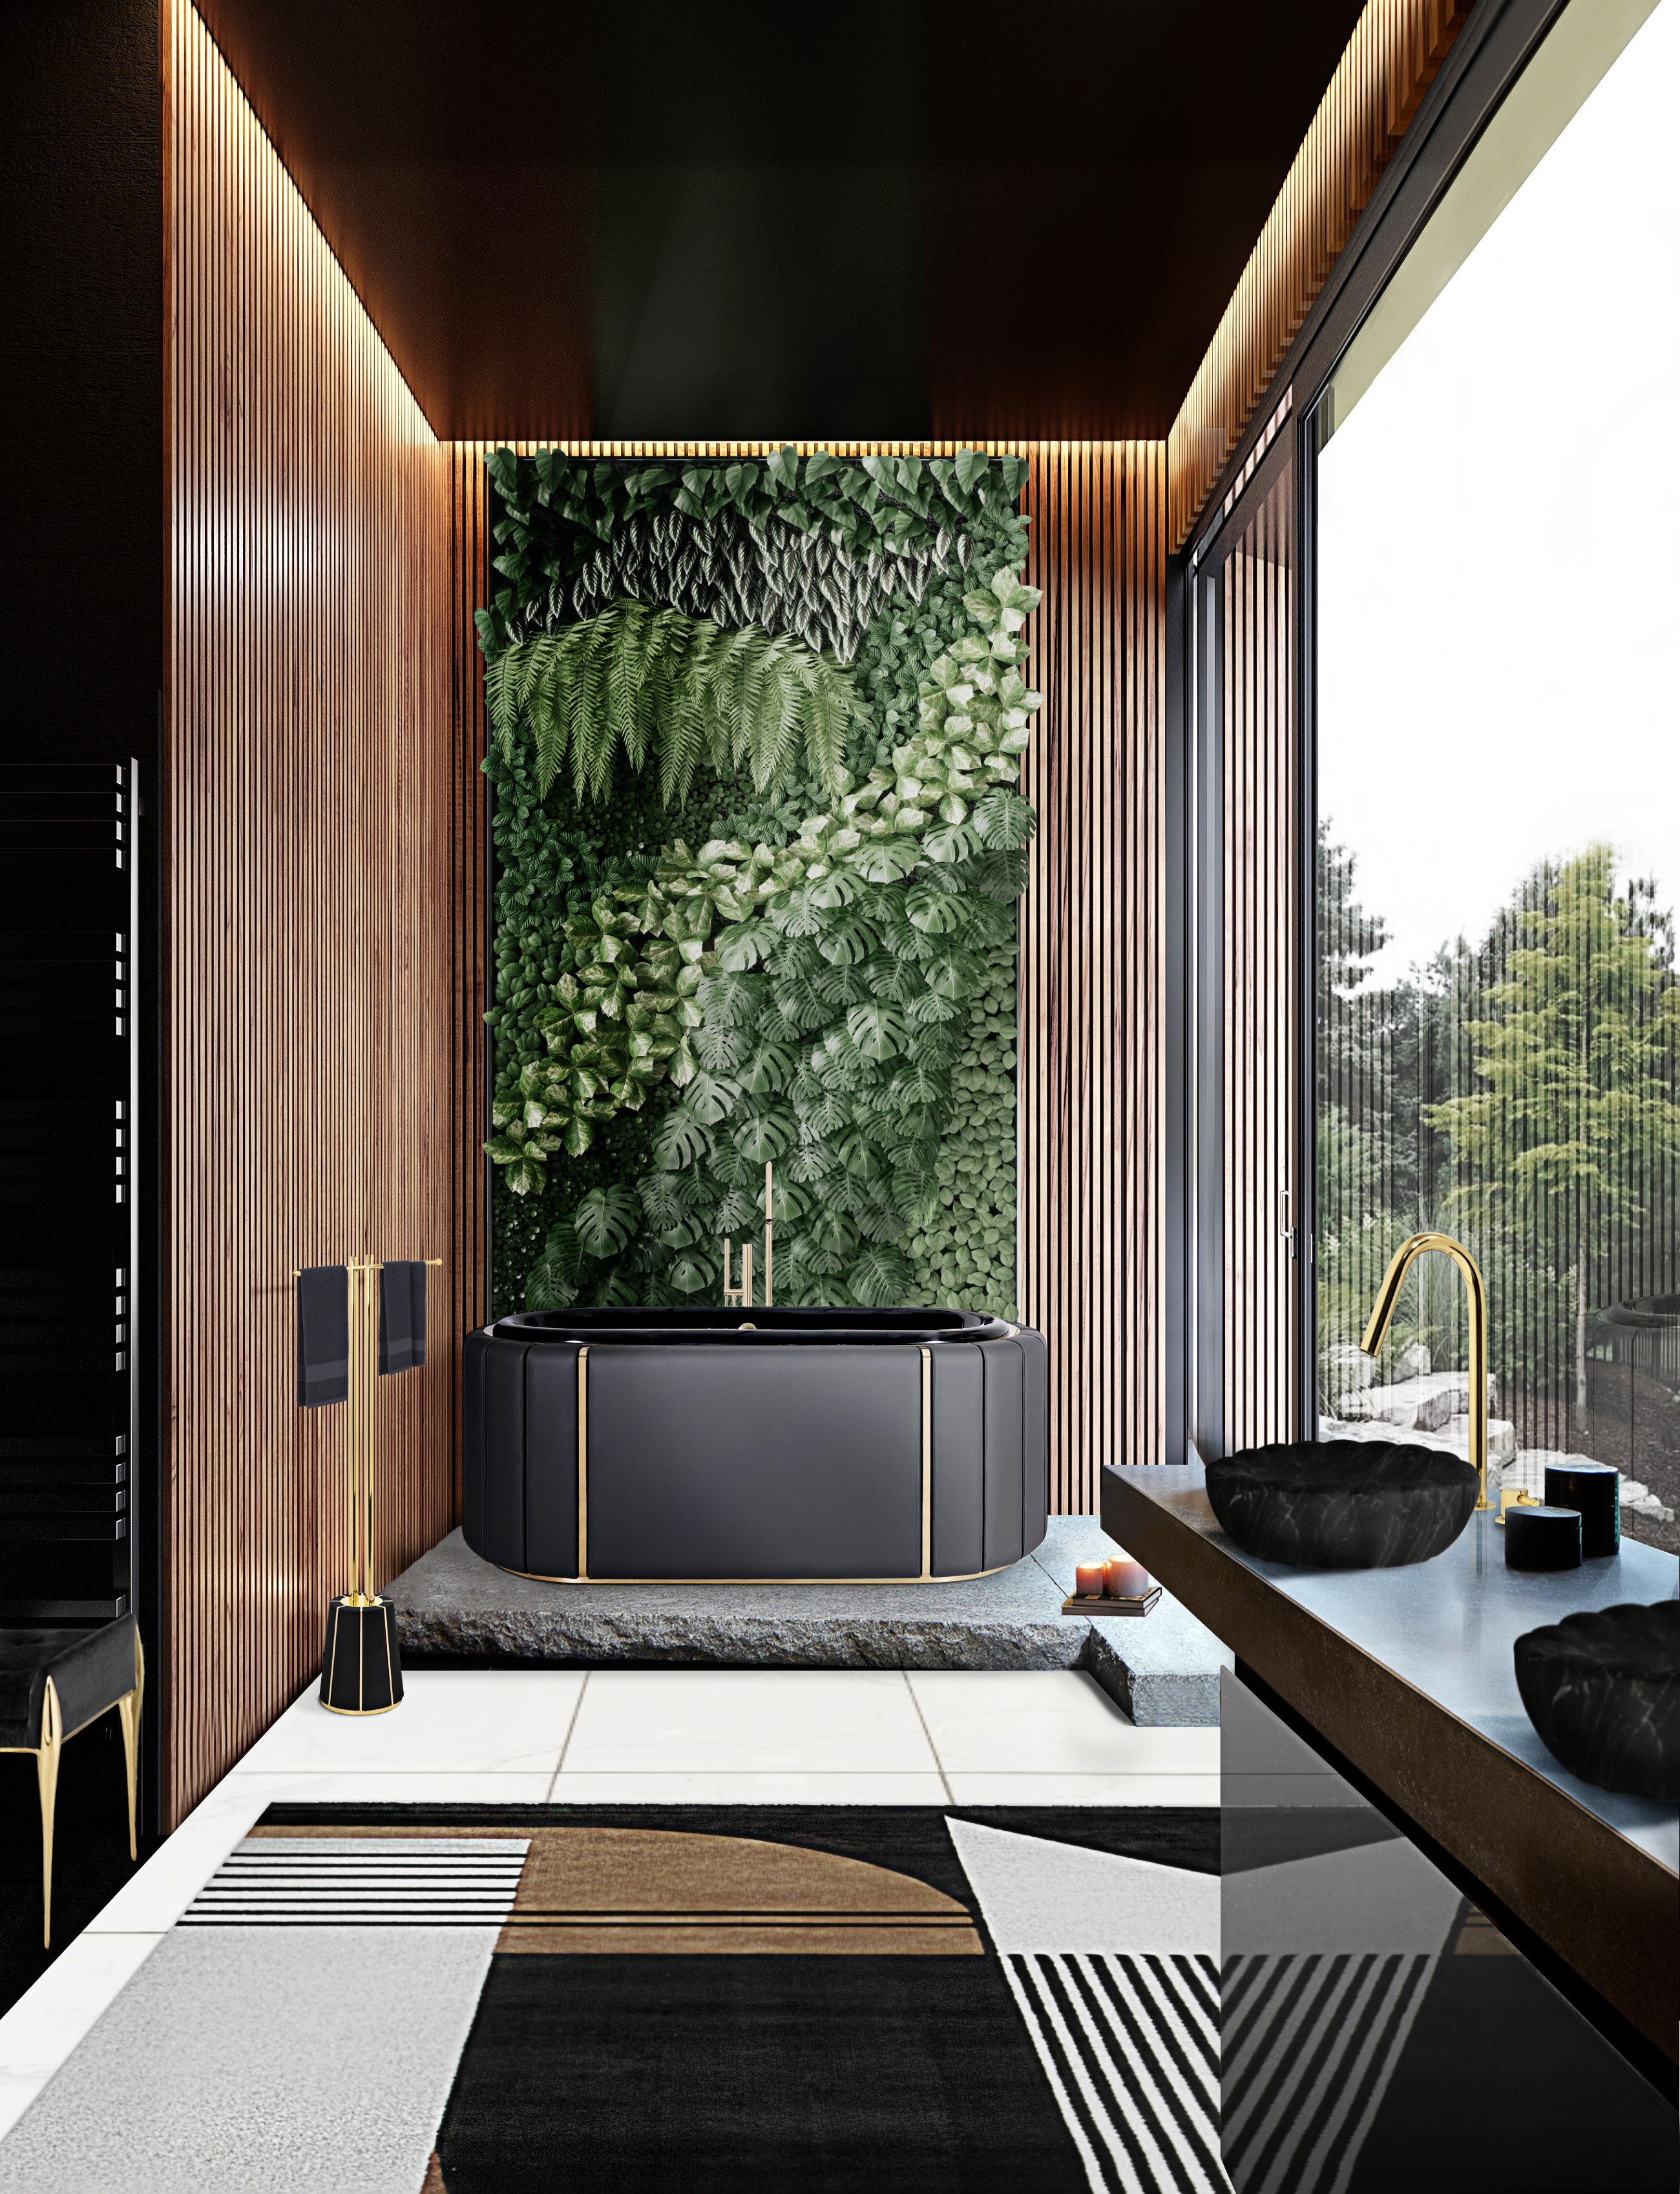 Biophilic Designs: New Trend for Bathroom Interiors Biophilic Designs Biophilic Designs: New Trend for Bathroom Interiors nature inspired bathroom design with darian bathtub and antelope rug